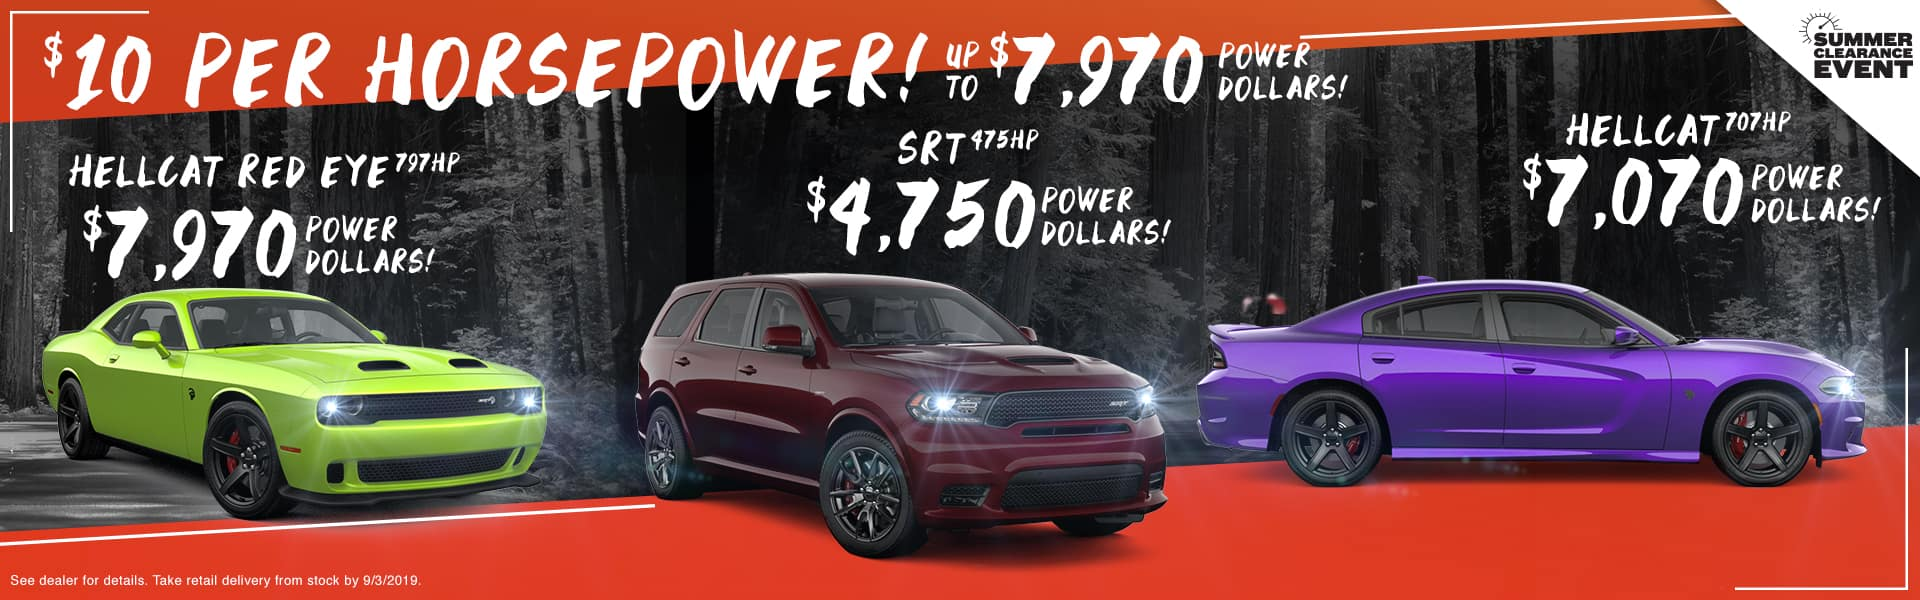 $10 Per Horsepower! | Up To $7,970 Power Dollars! | Hellcat Red Eye 797HP $7,970 Power Dollars! | SRT 475HP $4,750 Power Dollars! | Hellcat 707HP $7,070 Power Dollars!